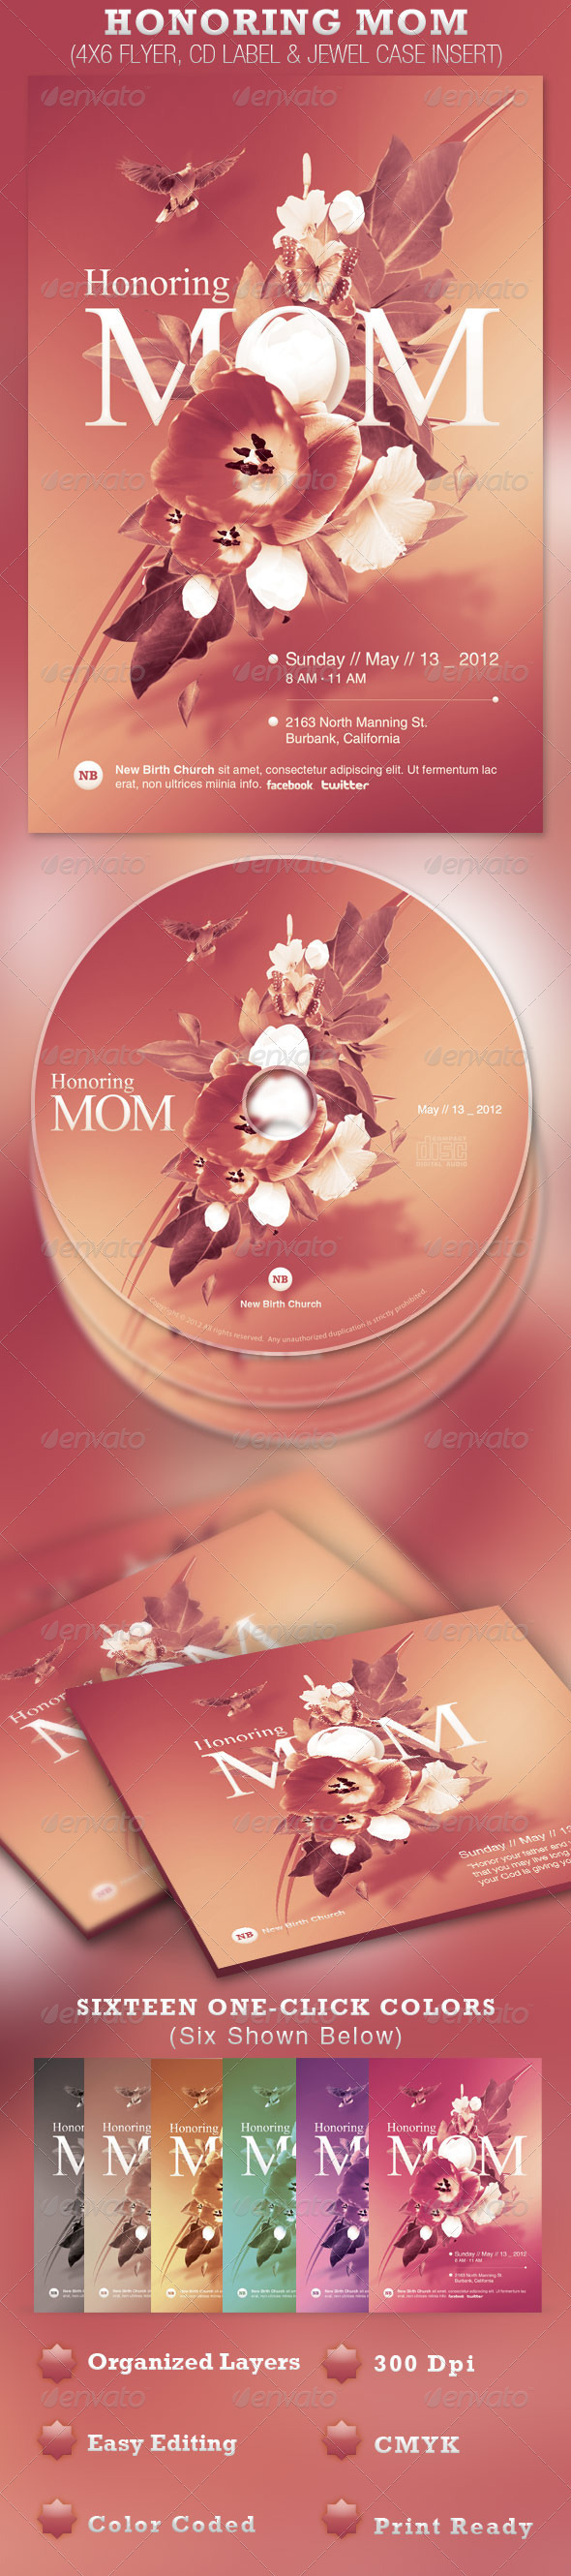 Honoring Mom Church Flyer and CD Template - Church Flyers